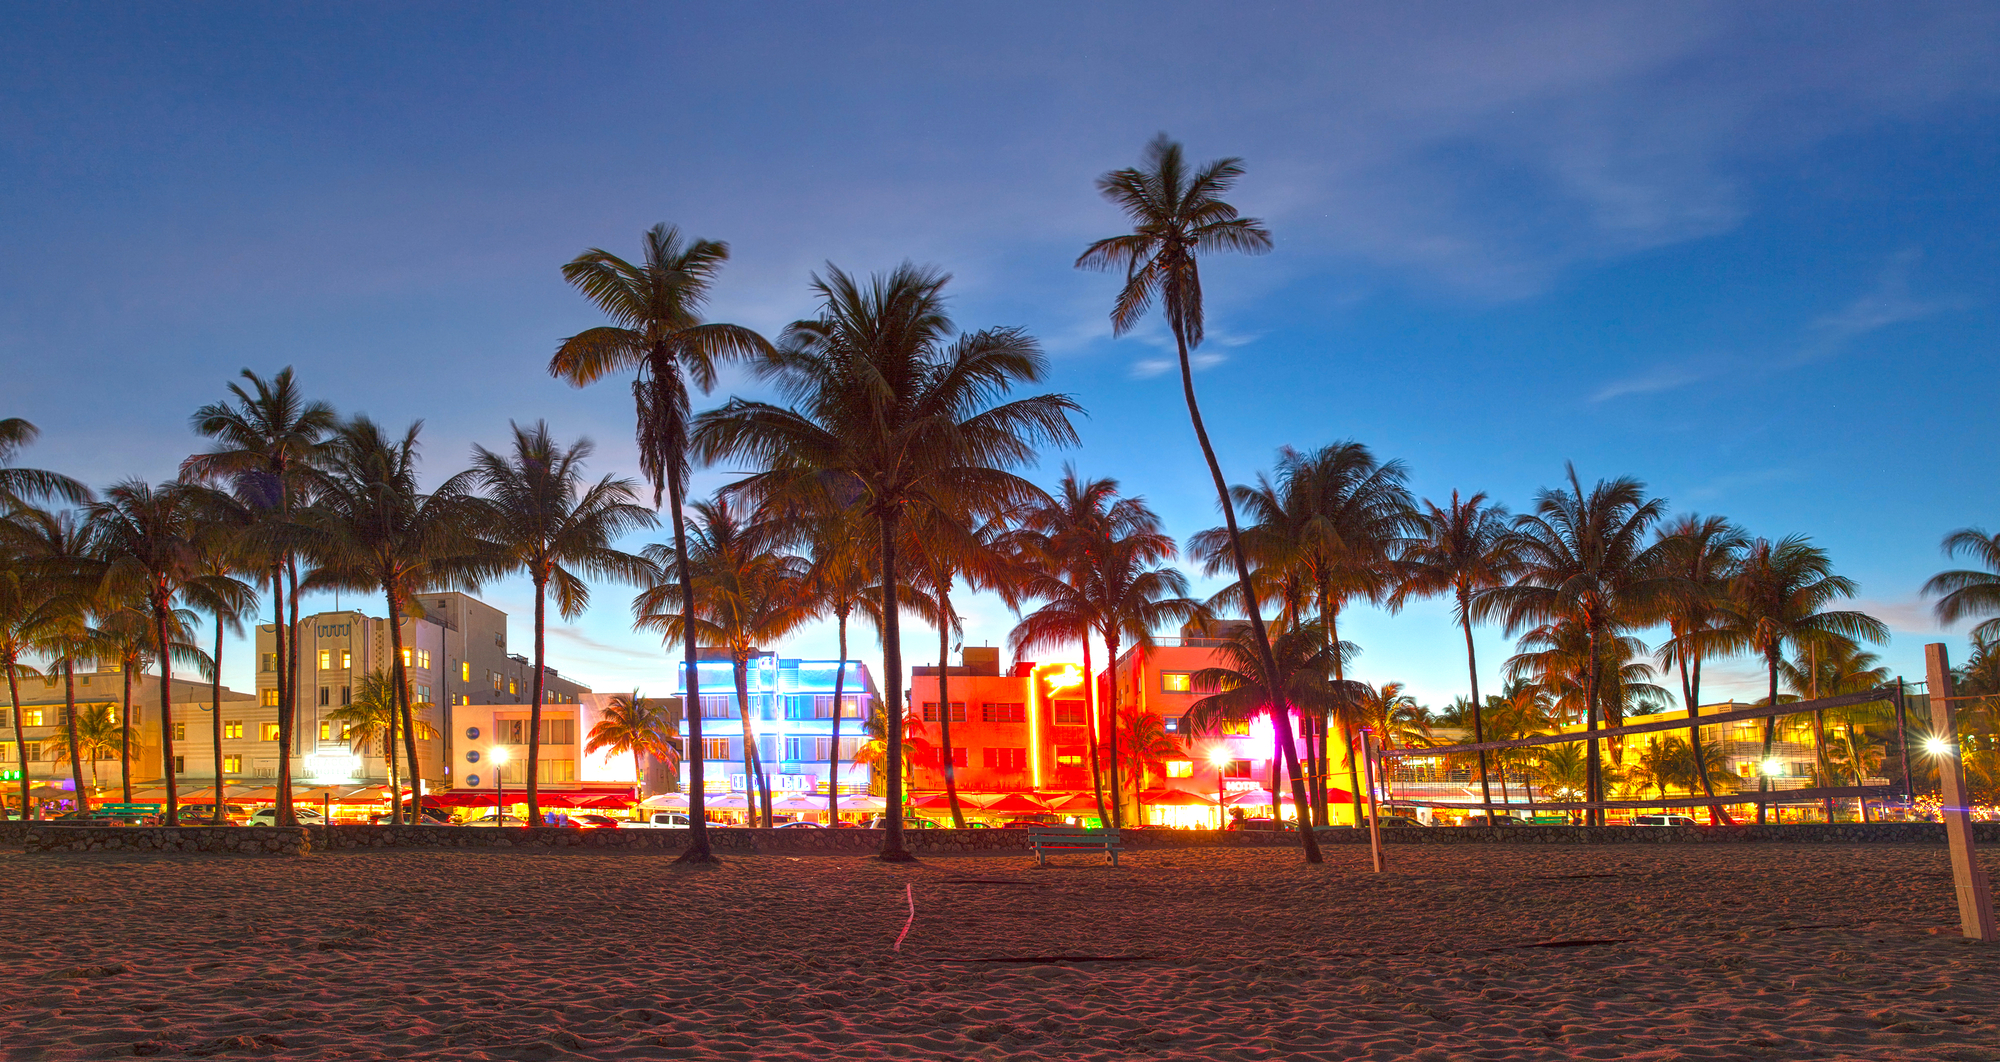 What to do in Miami Beach During the COVID-19 Pandemic